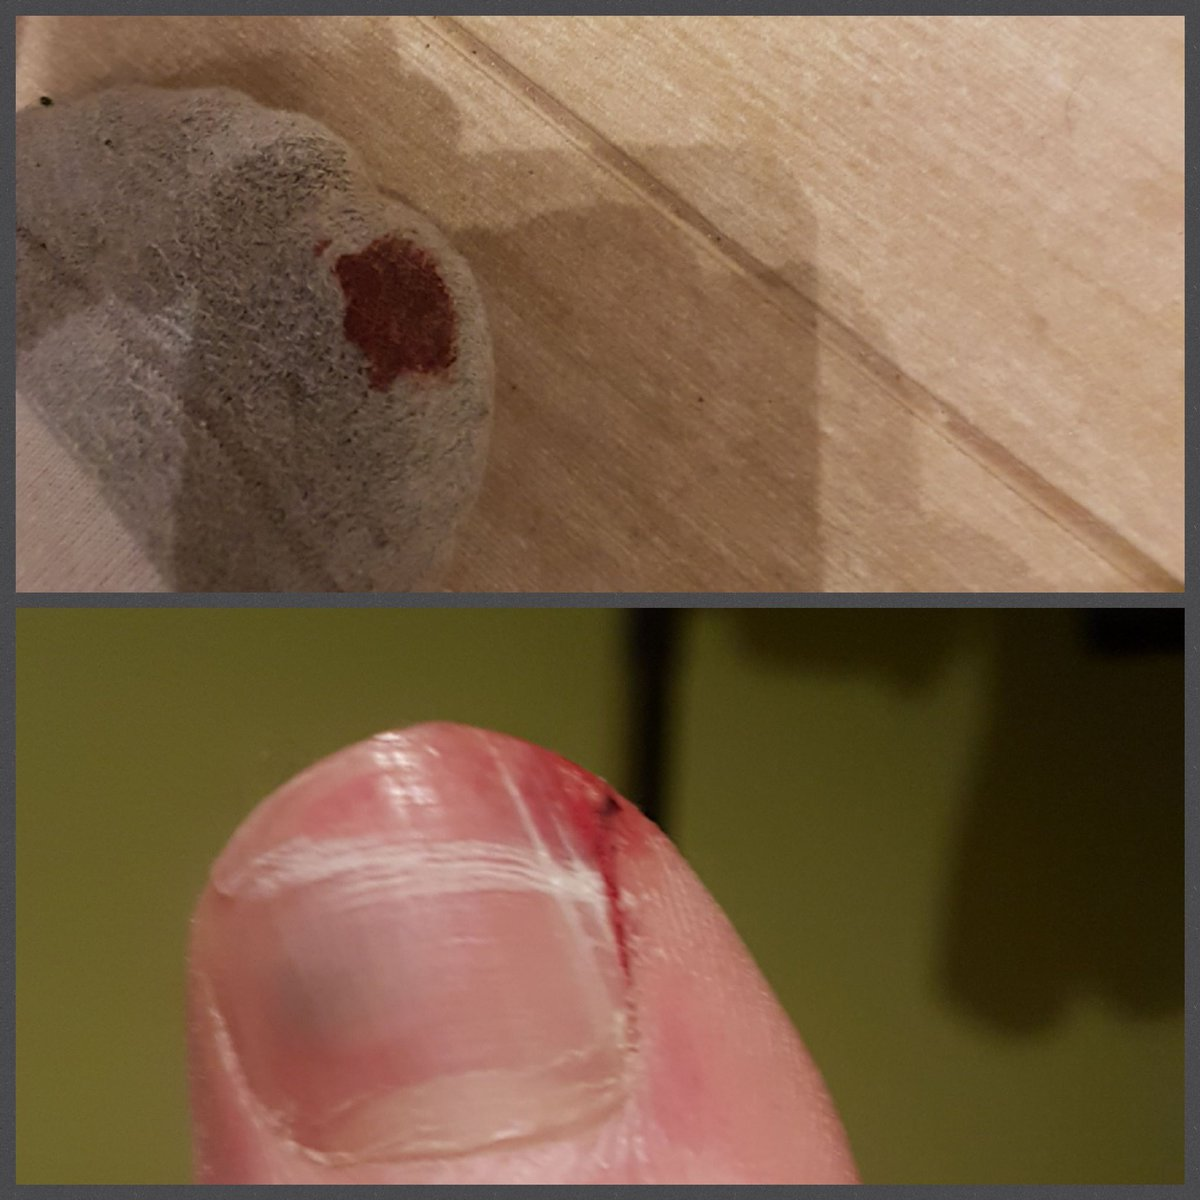 When you hit stump while riding bicycle... It can cost you a nail. #bicycles #13Mar #velo<br>http://pic.twitter.com/N7L8X5A7ri